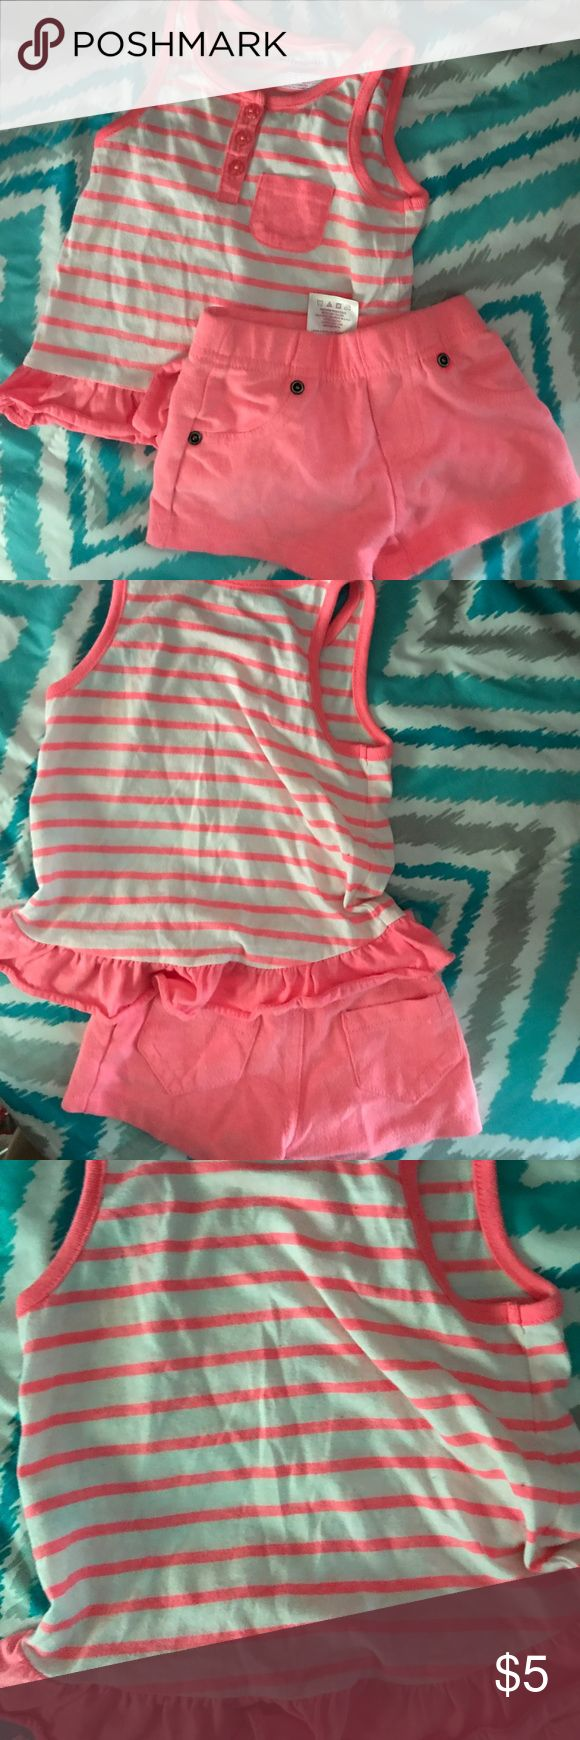 12 month garanimals Short set Has a little piling from the washer.(washed w/dreft and gentle)Please ask any questions, bundle for discounts, and make offers! If your offer isn't what I had in mine, I'll just send you counteroffer.  CHECK OUT MY CLOSET FOR WOMEN, MEN, AND CHILDREN CLOTHES; with name brands Such as VICTORIA SECRET - PINK  GUESS MICHAEL KORS COACH CHARLOTTE RUSSE(REFUGE) WET SEAL VOLCOM GYMBOREE DKNY EXPRESS CARTERS OSHKOSH MILEY CYRUS LOFT AMERICAN EAGLE HOLLISTER ANN TAYLOR…